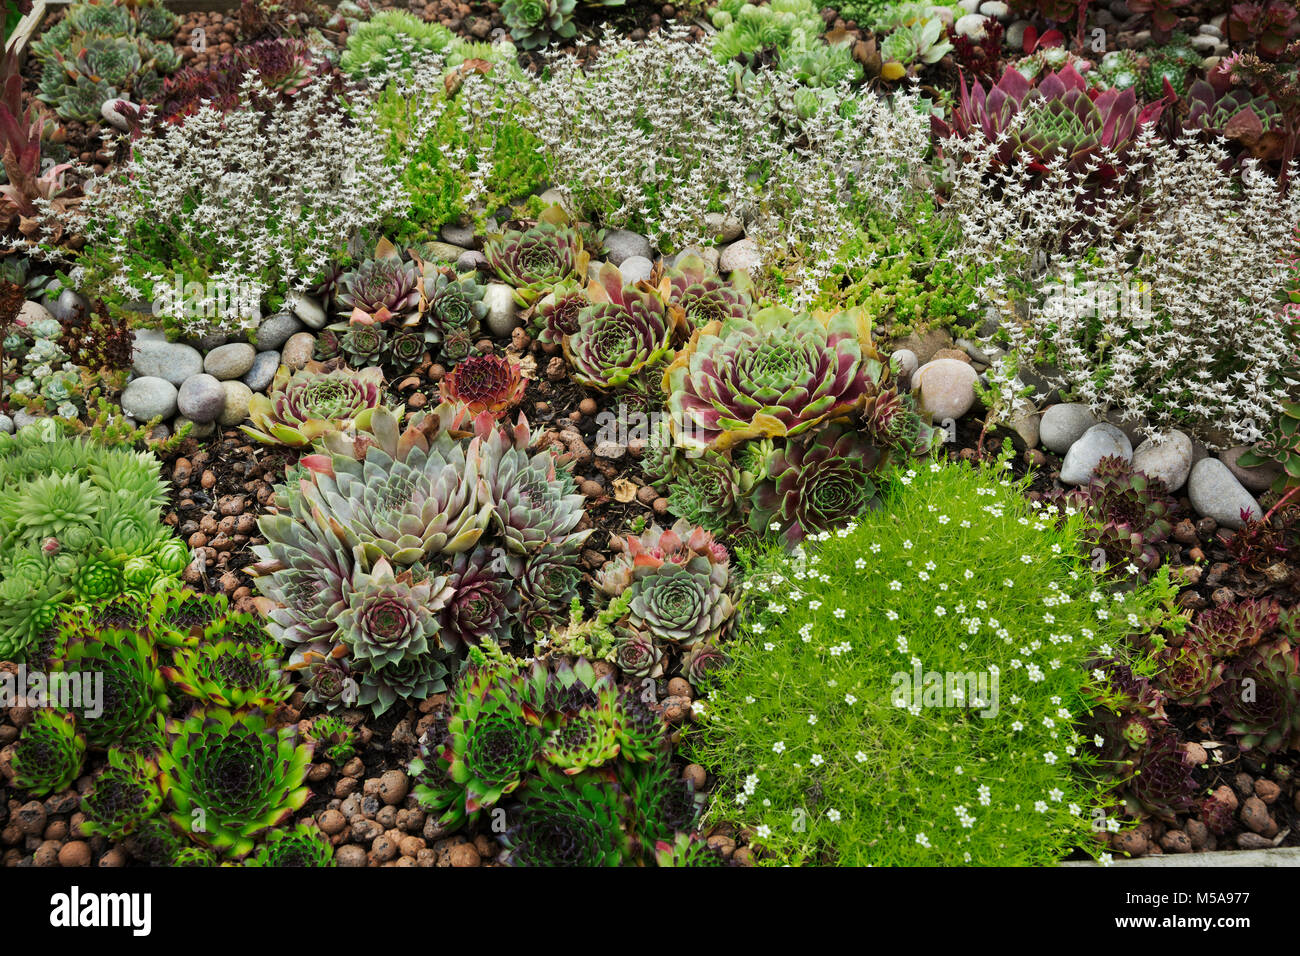 High angle view of flower bed with selection of succulent plants in a garden. - Stock Image